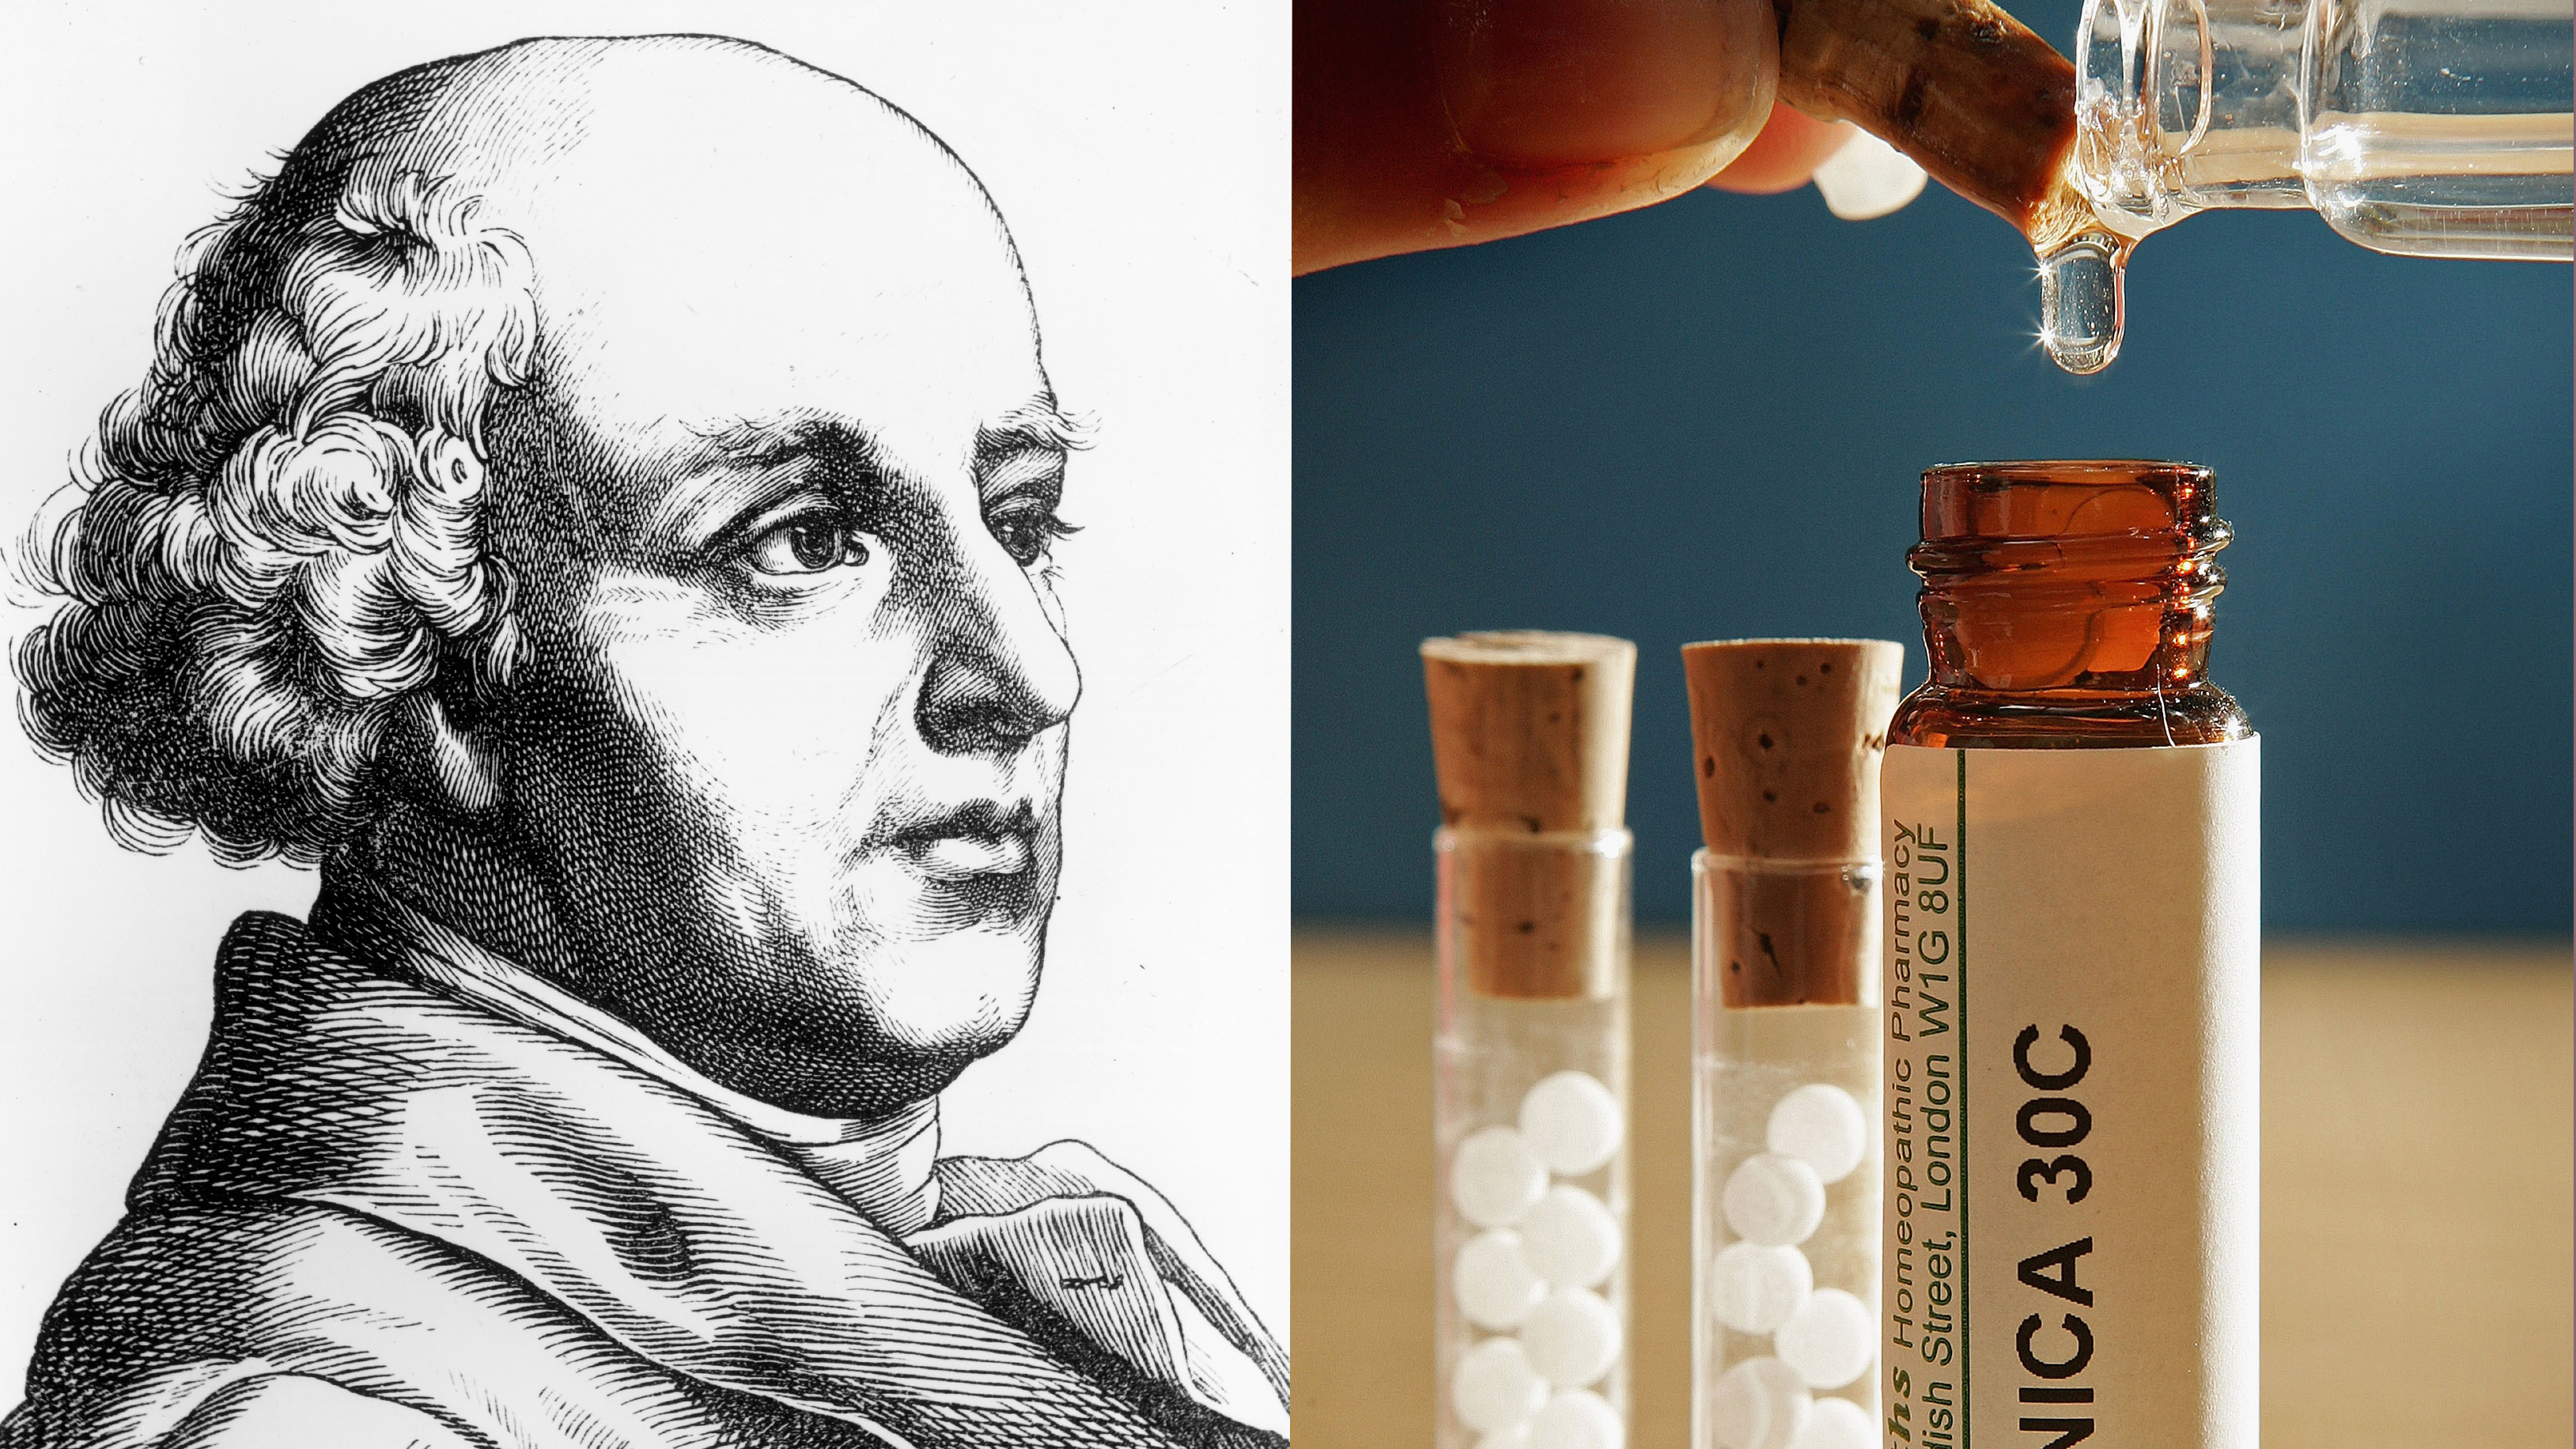 Samuel Hahnemann father of homeopathy